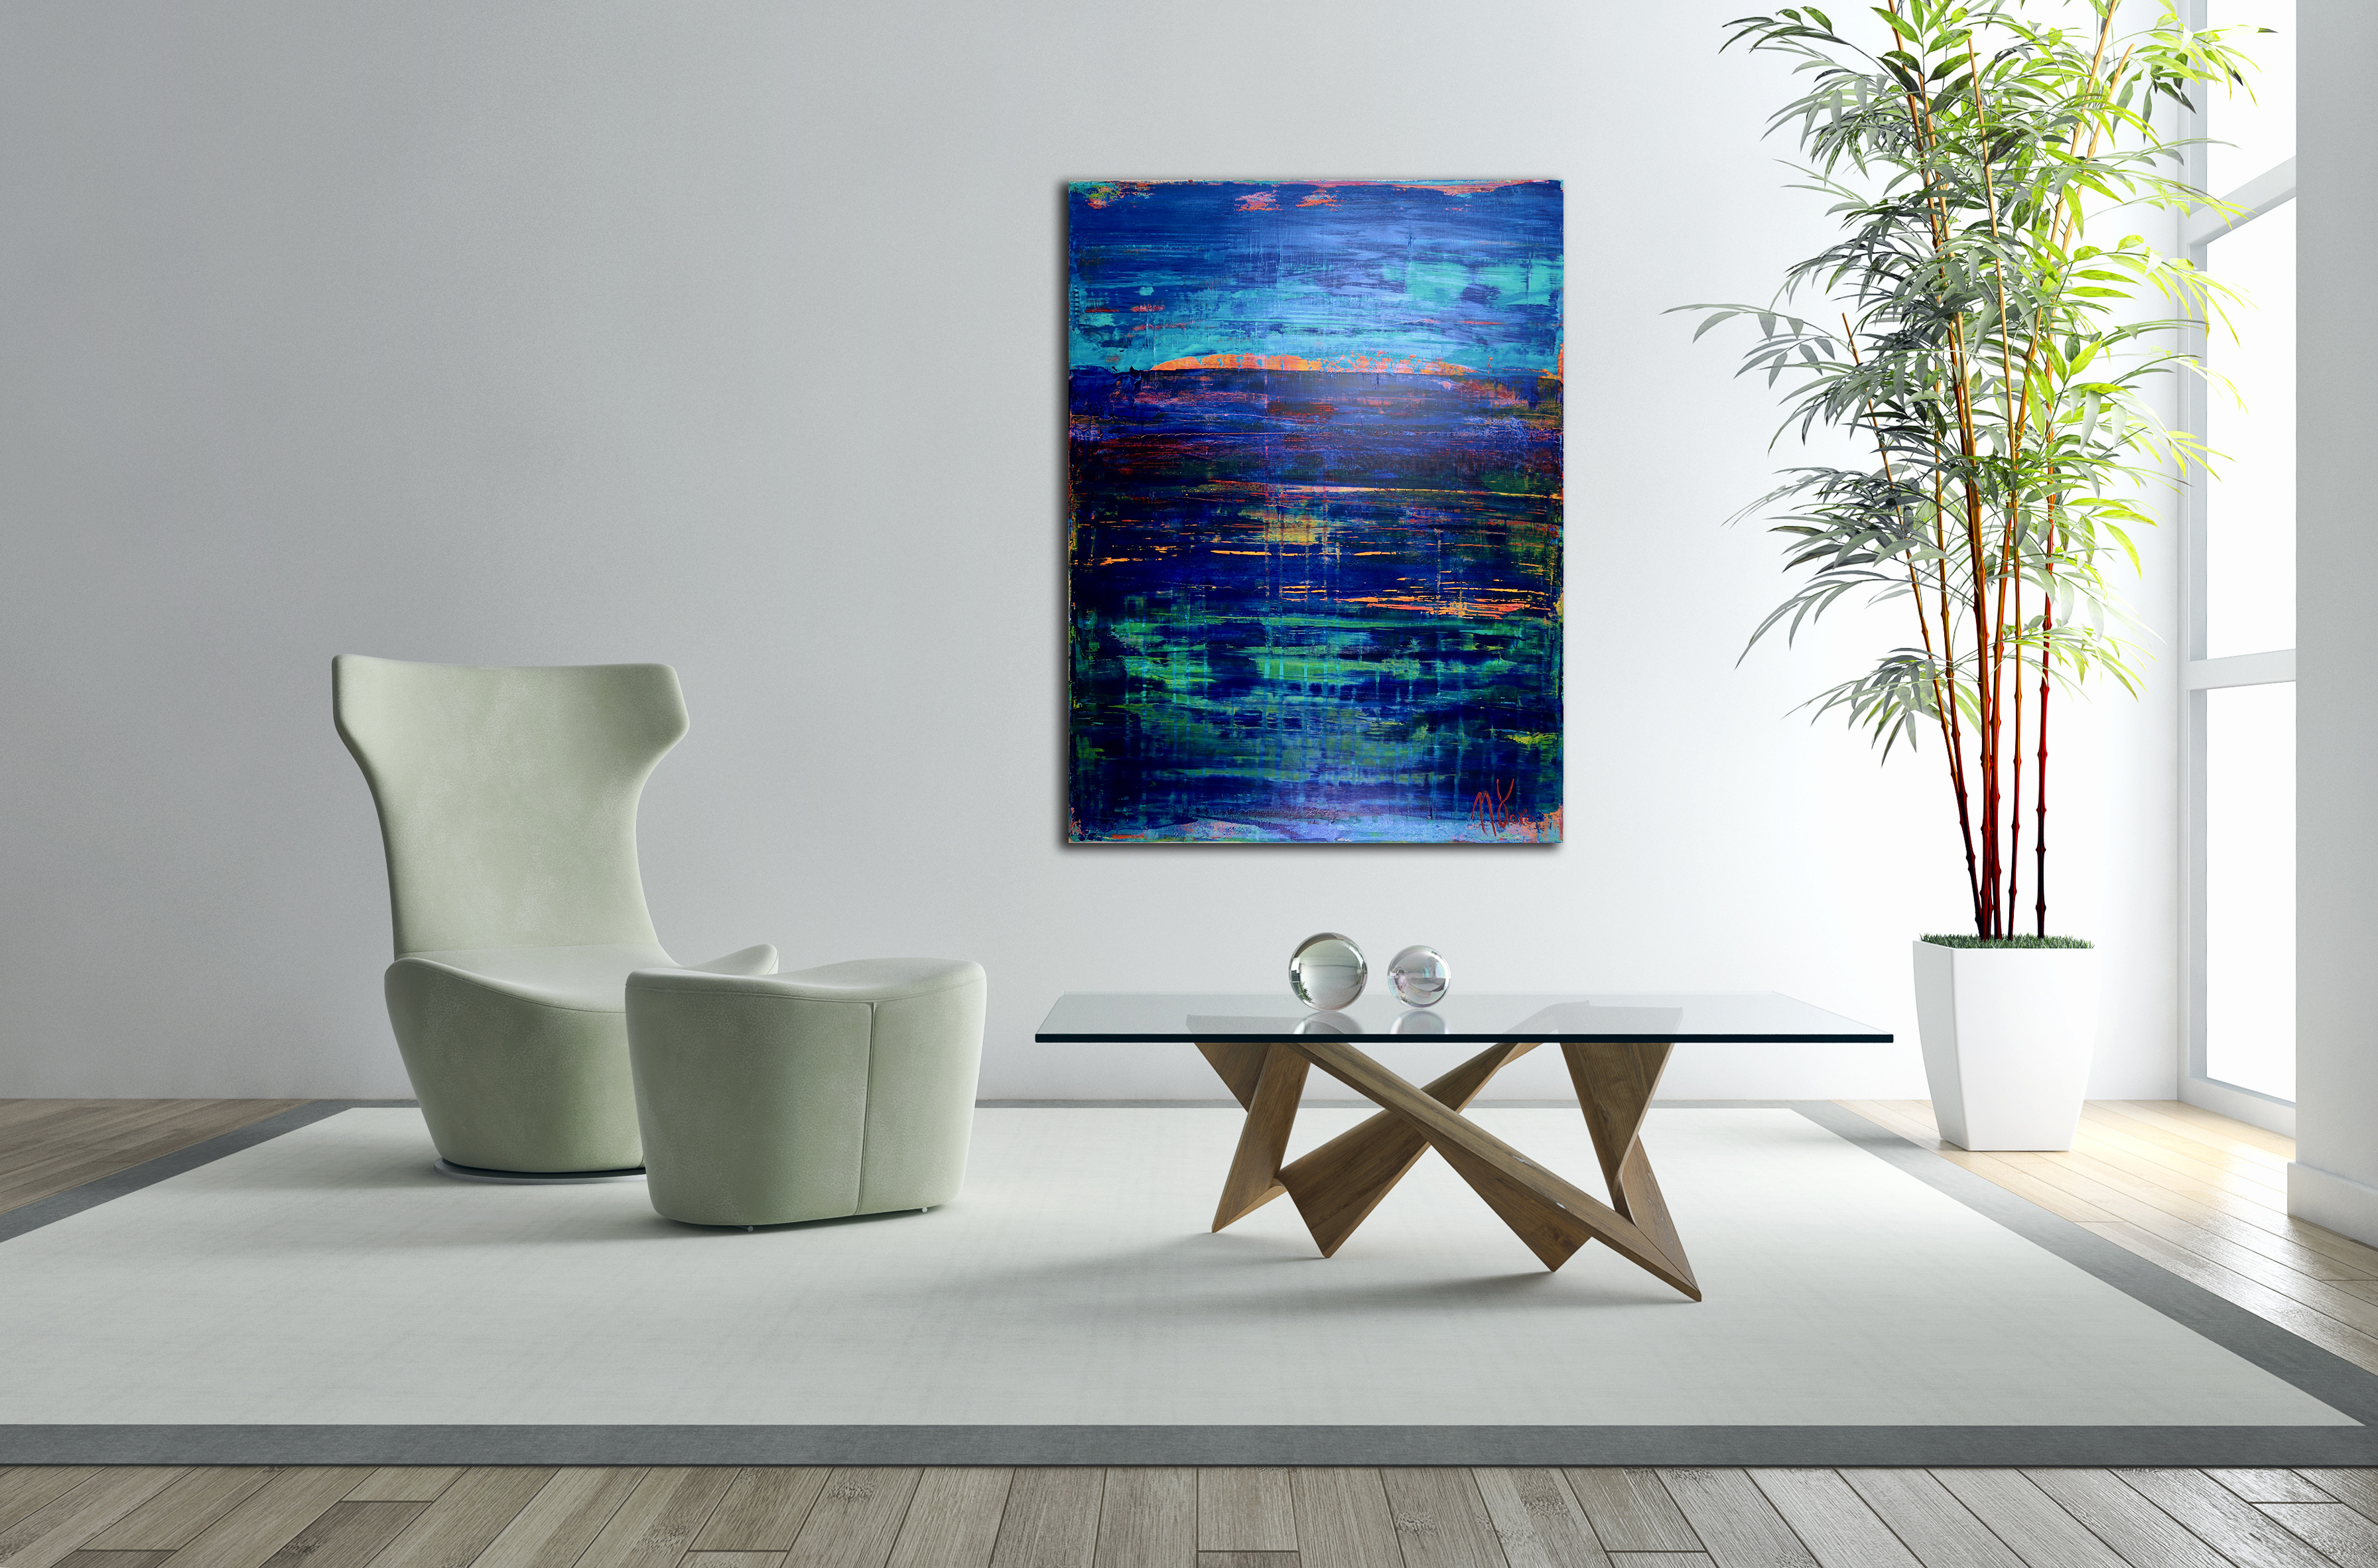 Ocean Particles-Oceanic Colorfield Acrylic painting by Nestor Toro